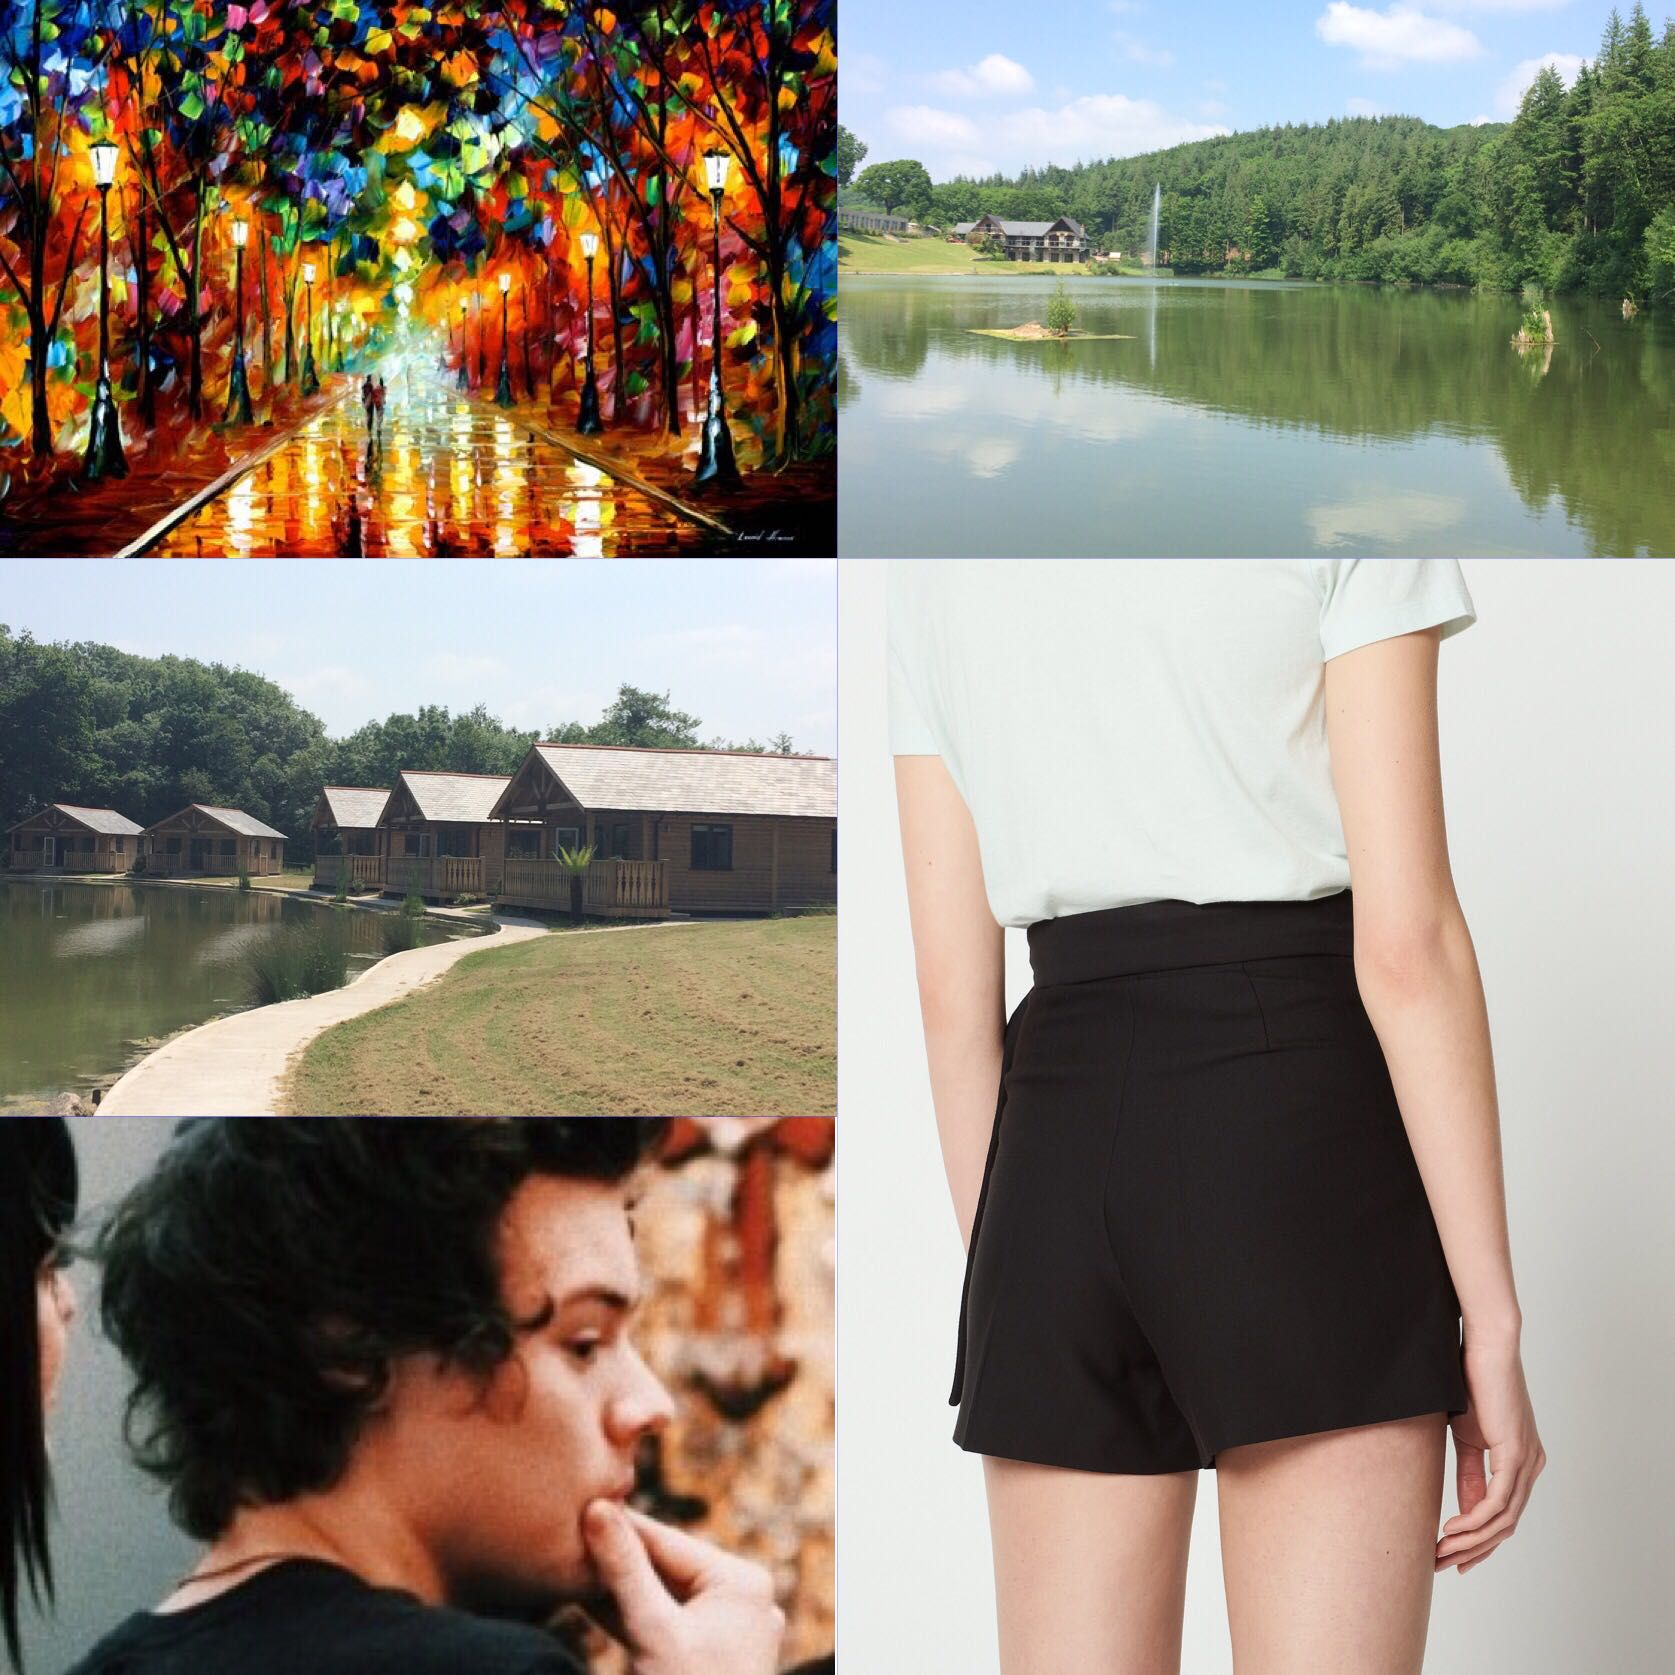 Art Cabin and Louis' Outfit